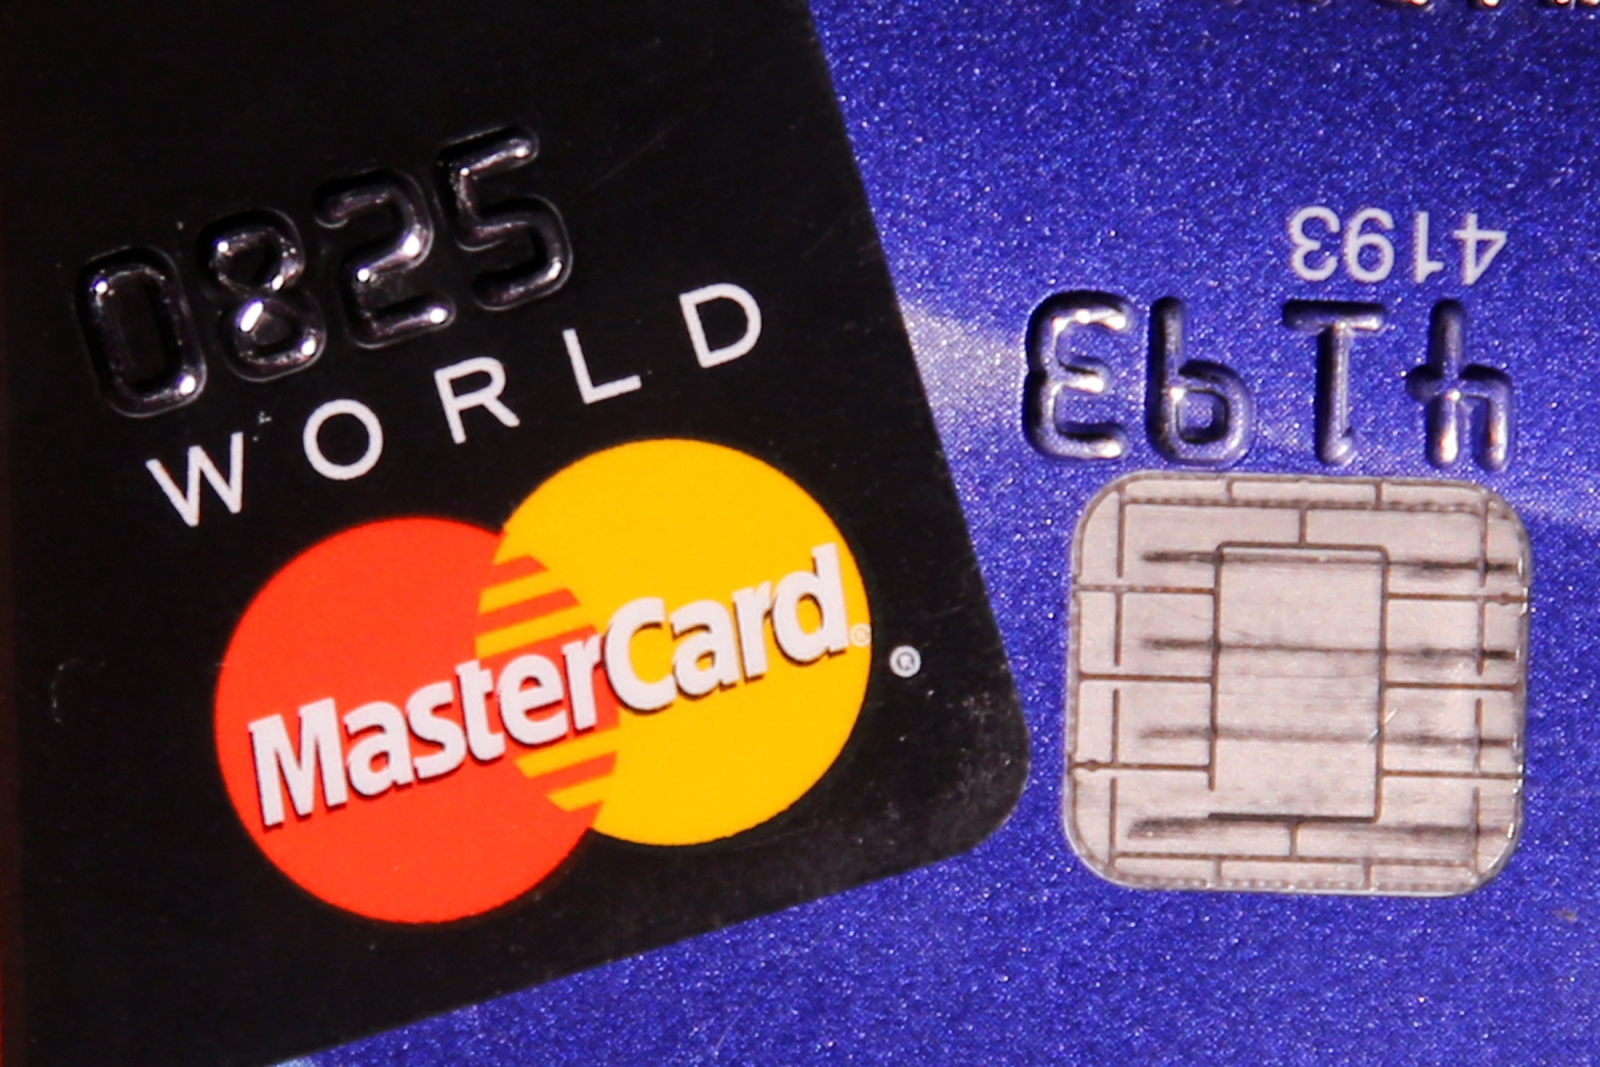 MasterCard to acquire 92.4% stake in VocaLink Holdings for about £700m